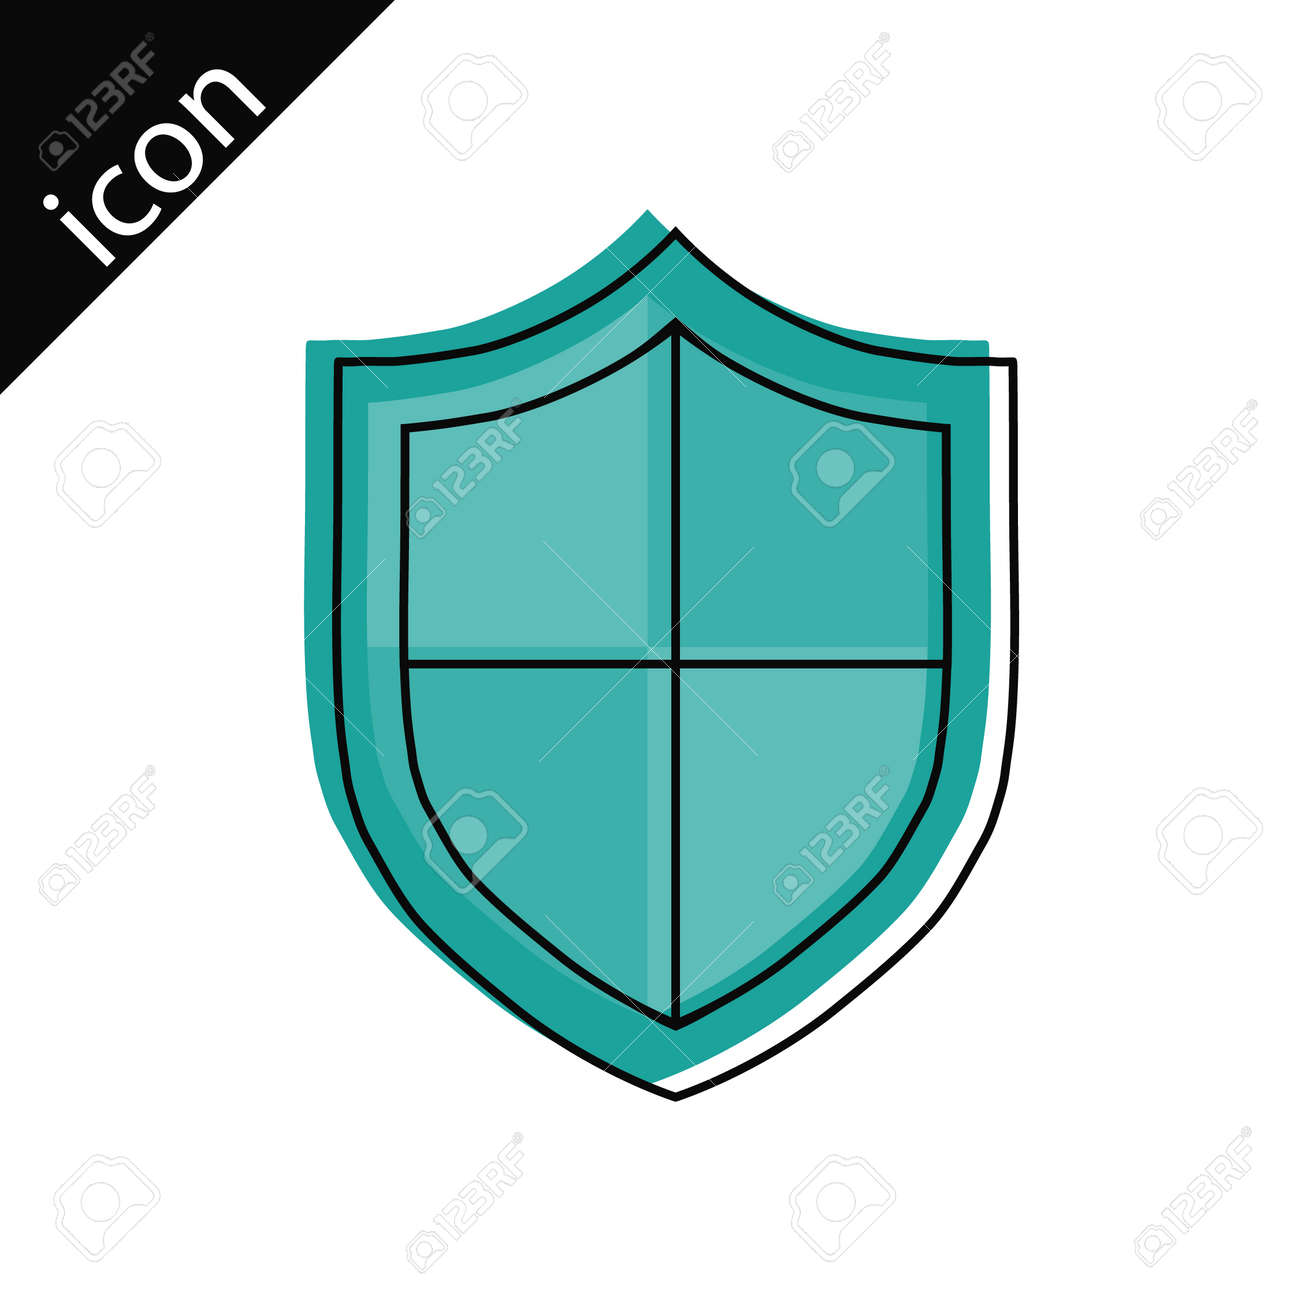 Shield lines. Protection shield icon with border lines. Vector illustration. Vector. - 167578782